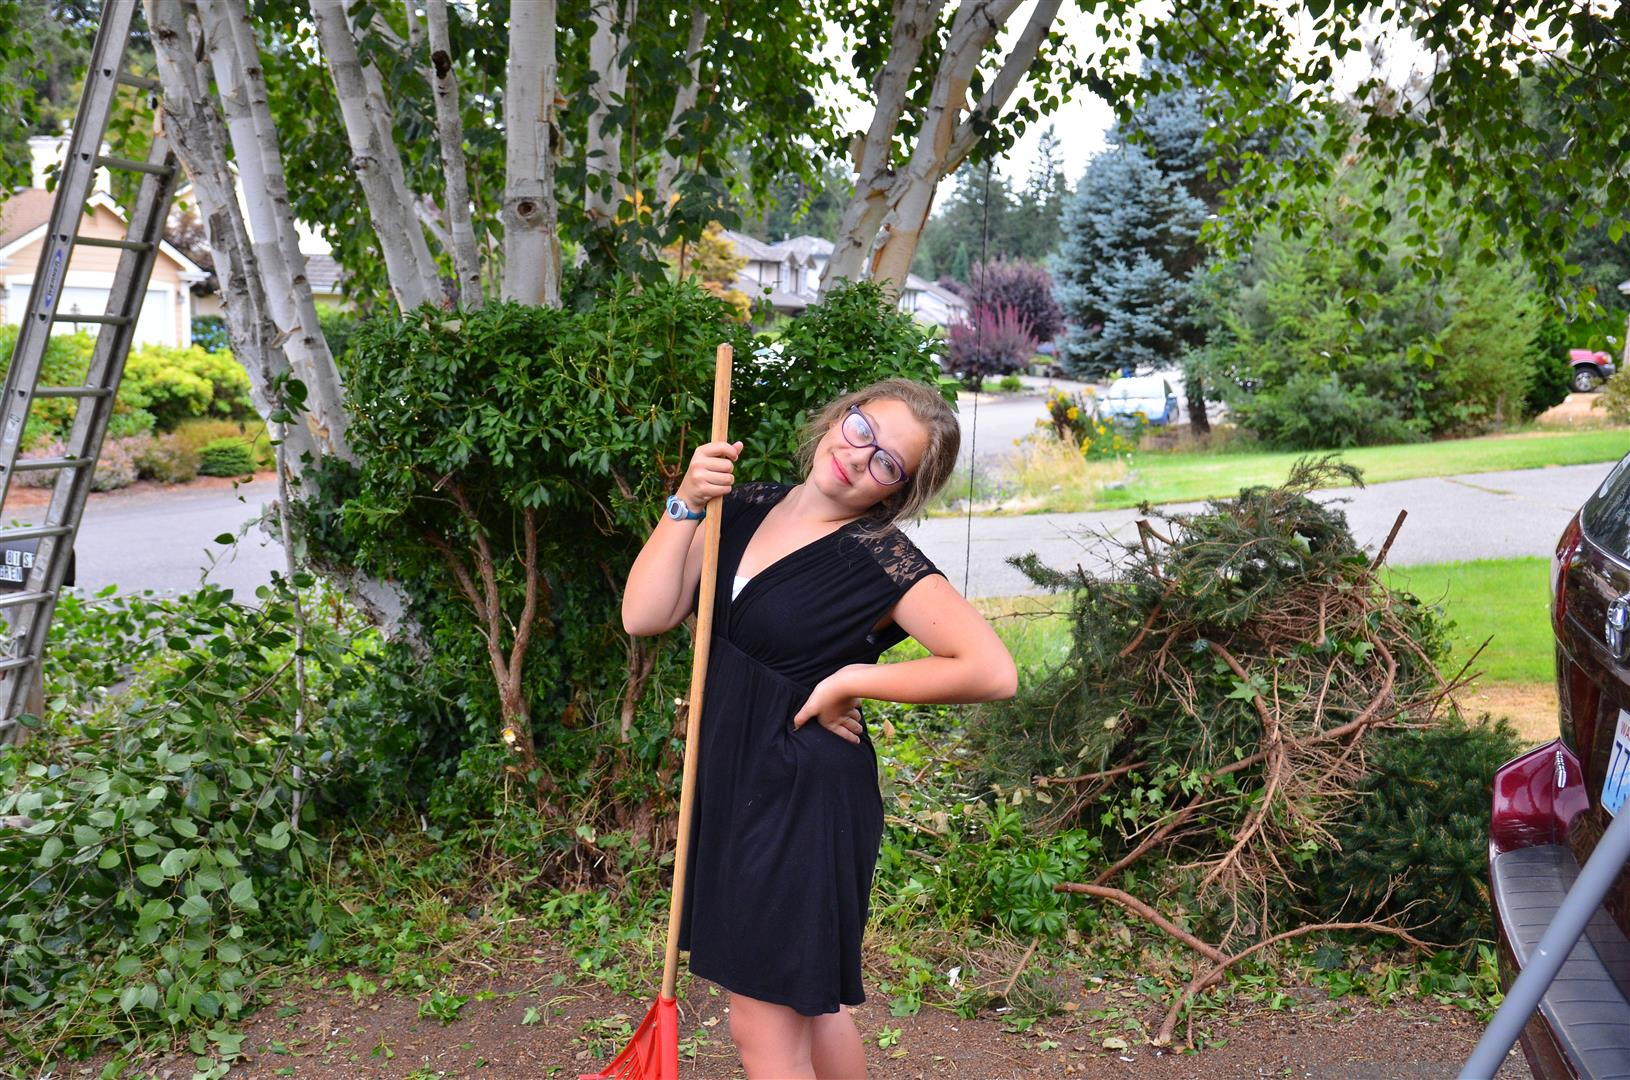 Lawn work is not Sarah's favorite -- she is better at looking beautiful.